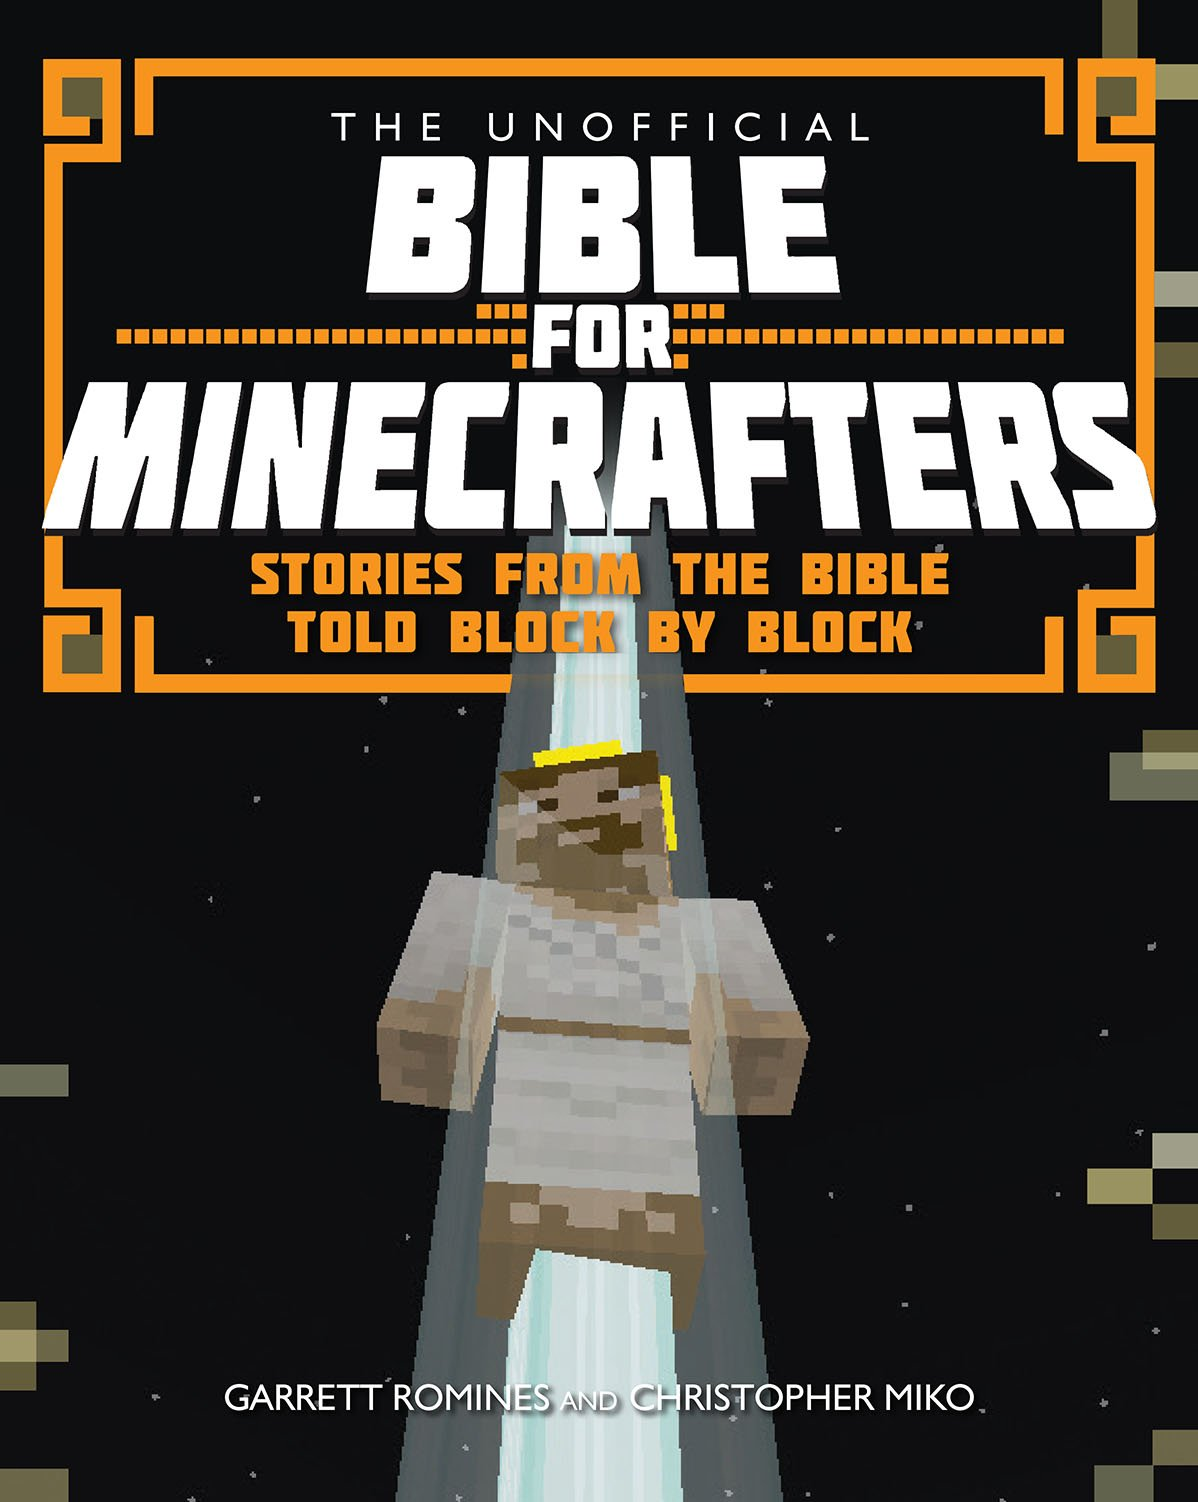 ROCKONLINE | New Creation Church | NCC | Joseph Prince | ROCK Bookshop | ROCK Bookstore | Star Vista | Children | Kids | Youth |Bible facts | Minecraft | Bible Story | Christian Living | Bible | Adventure | Imagination | Game | Toys | The Unofficial Bible For Minecrafters | Free delivery for Singapore Orders above $50.